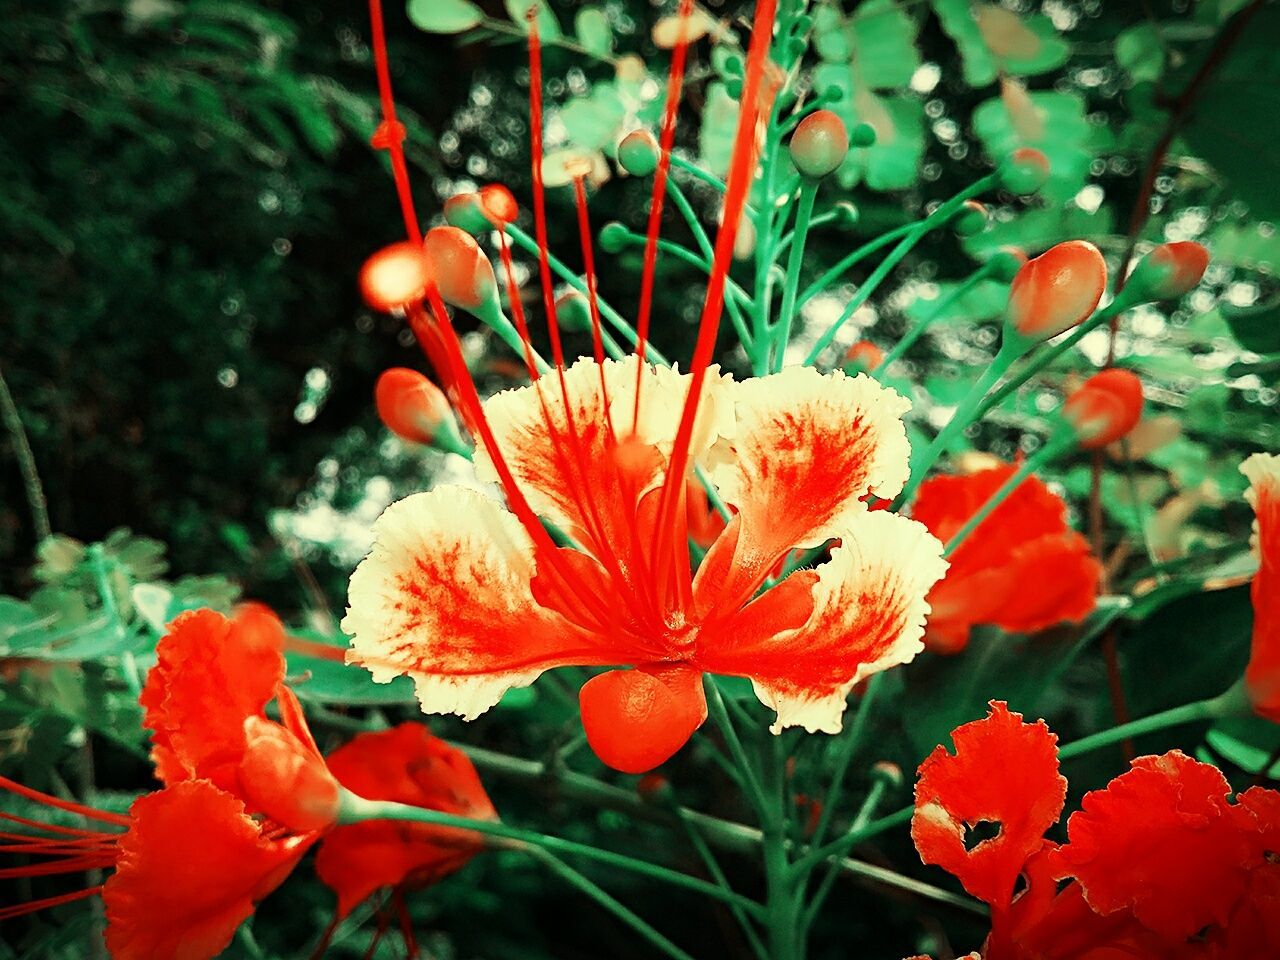 flower, growth, plant, petal, beauty in nature, nature, flower head, freshness, fragility, no people, blooming, outdoors, day, close-up, red, leaf